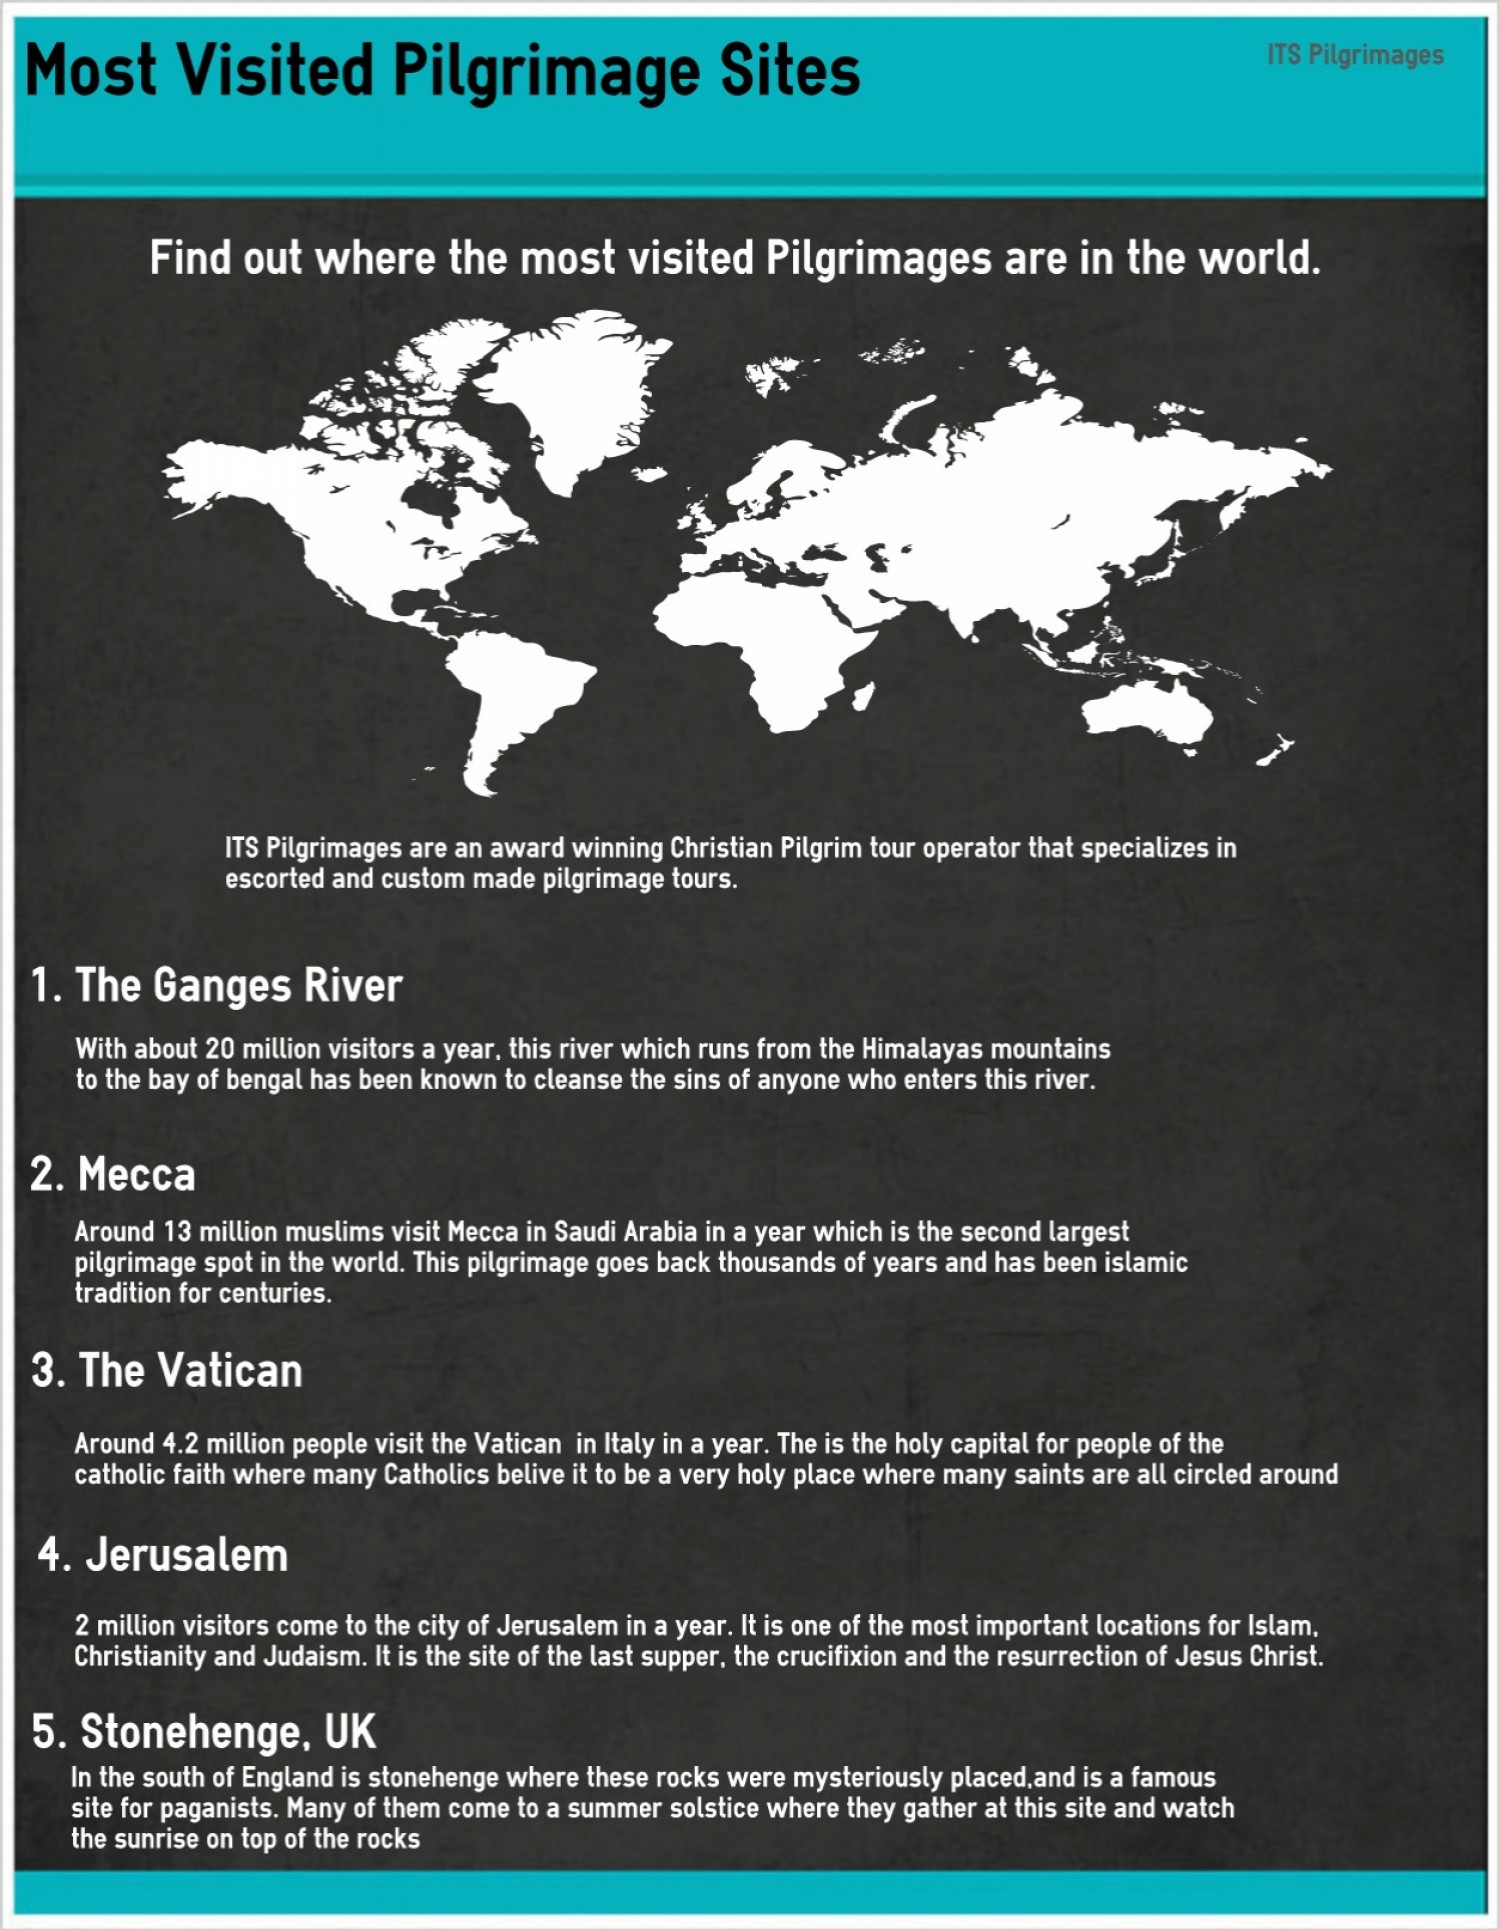 Most visited Pilgrimage sites Infographic